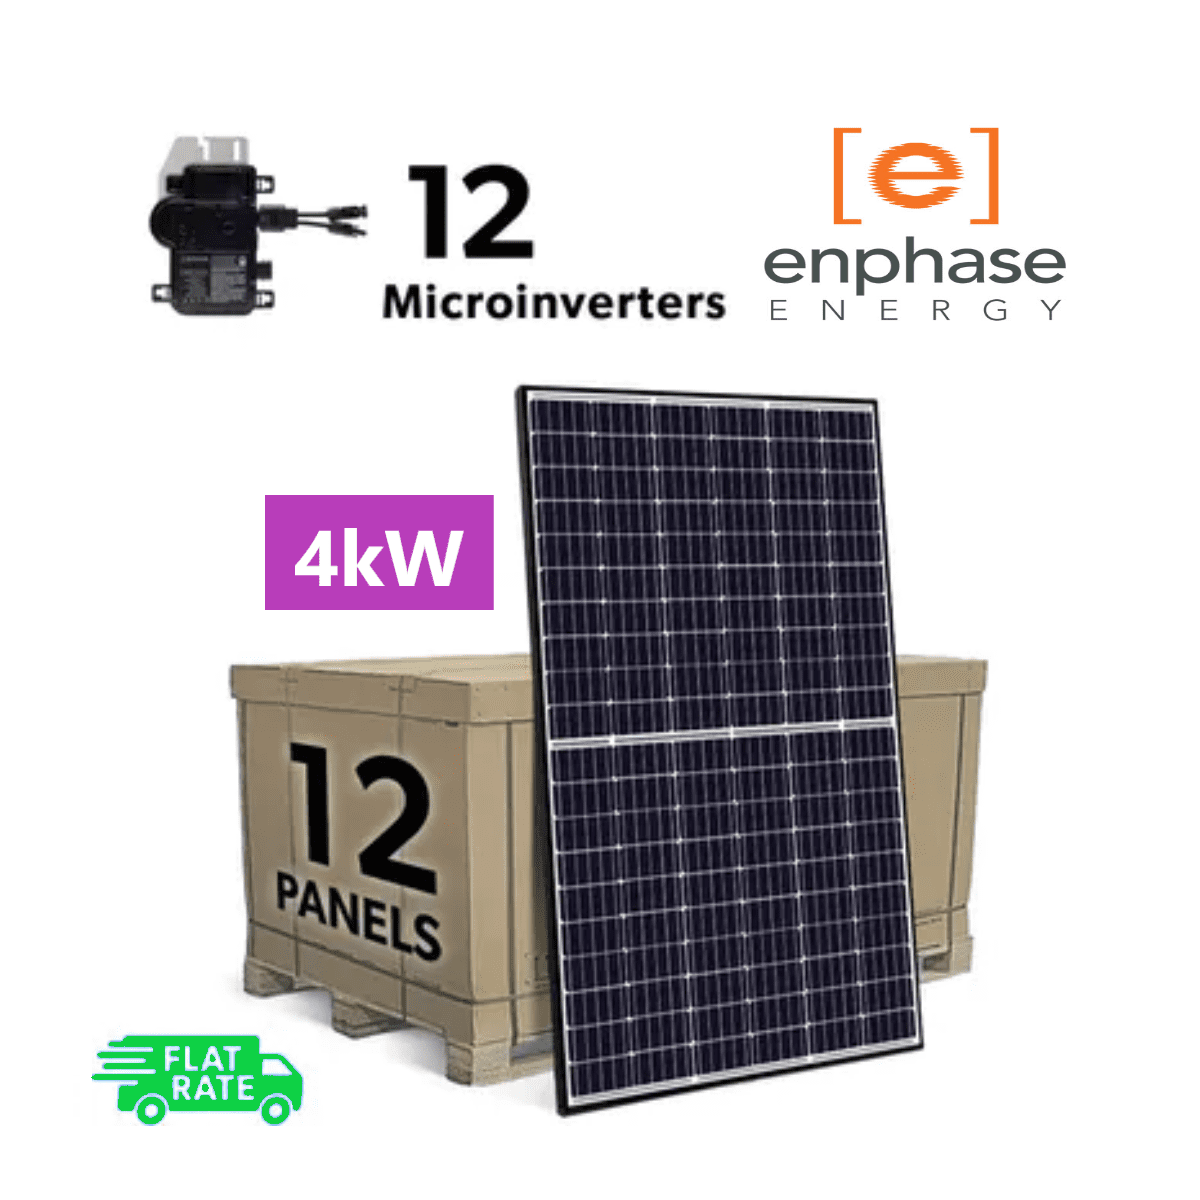 Complete Grid Tied 4kW (4000W) DIY Solar Panel System Kit with Enphase IQ+ Microinverters